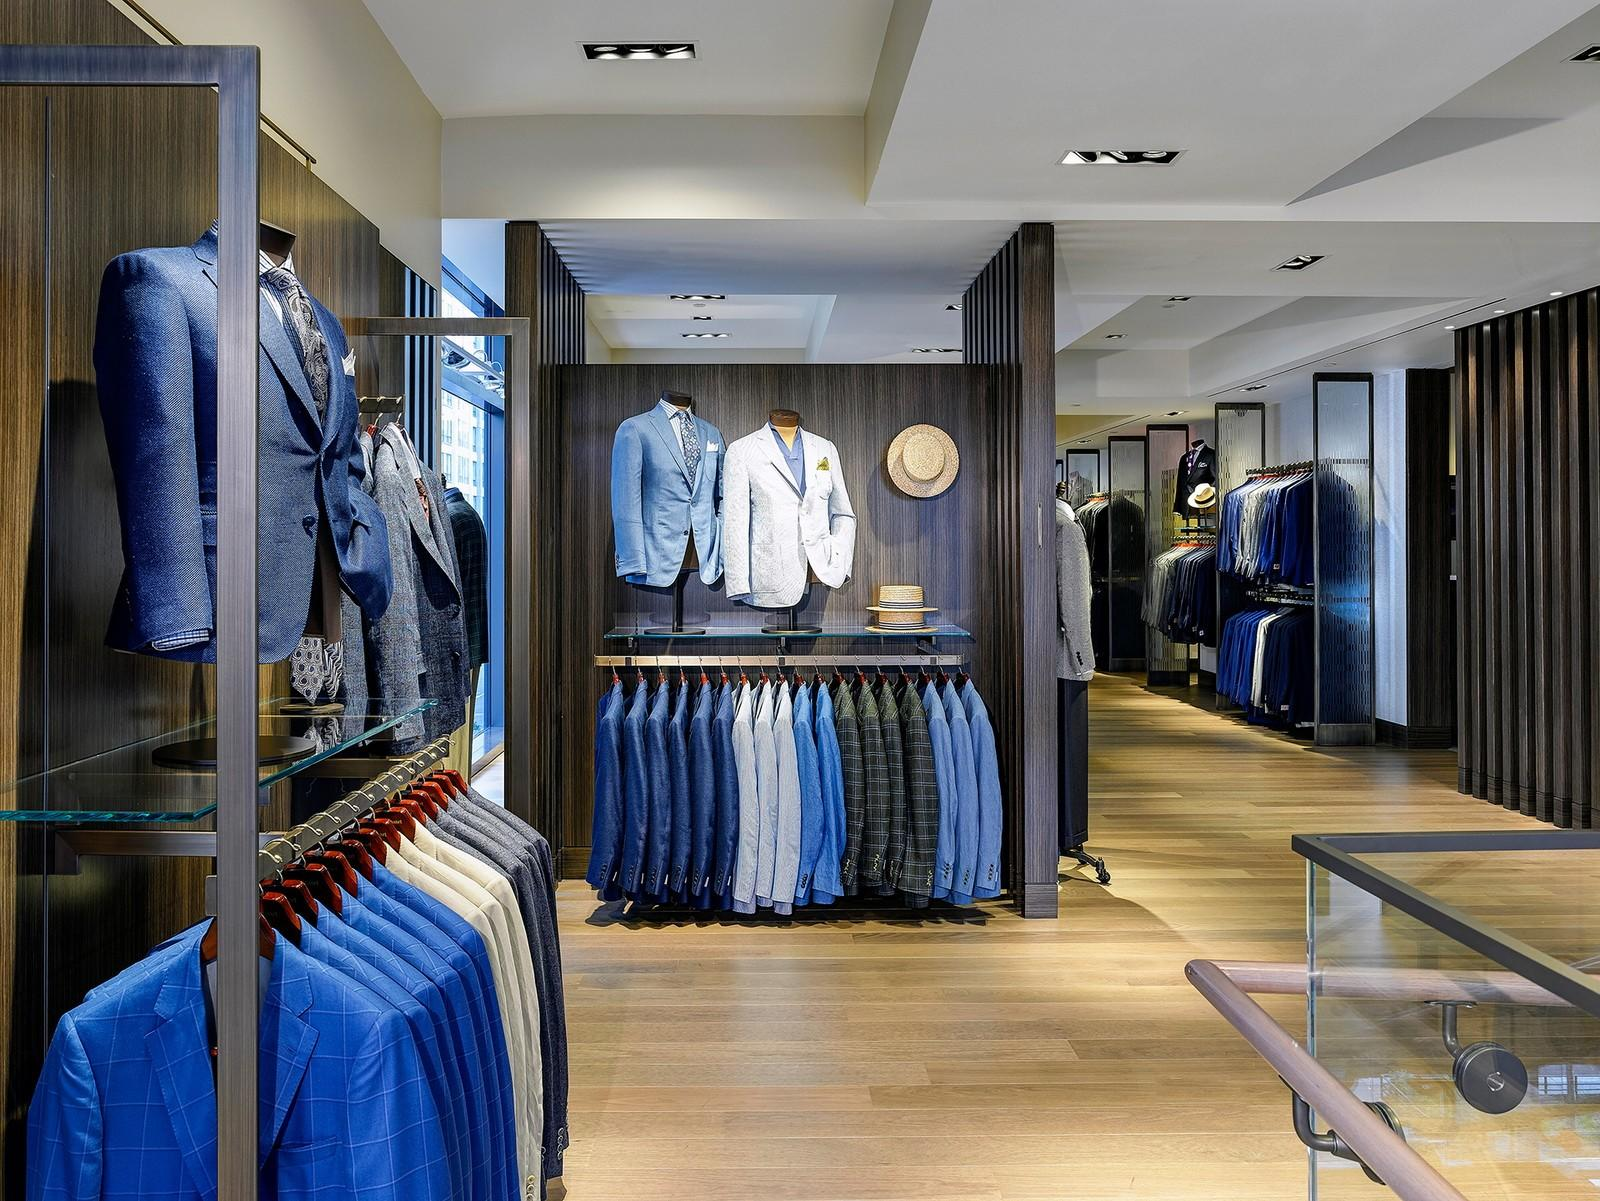 OUYEE high-end garment shop interior design ideas at discount for decoration-3